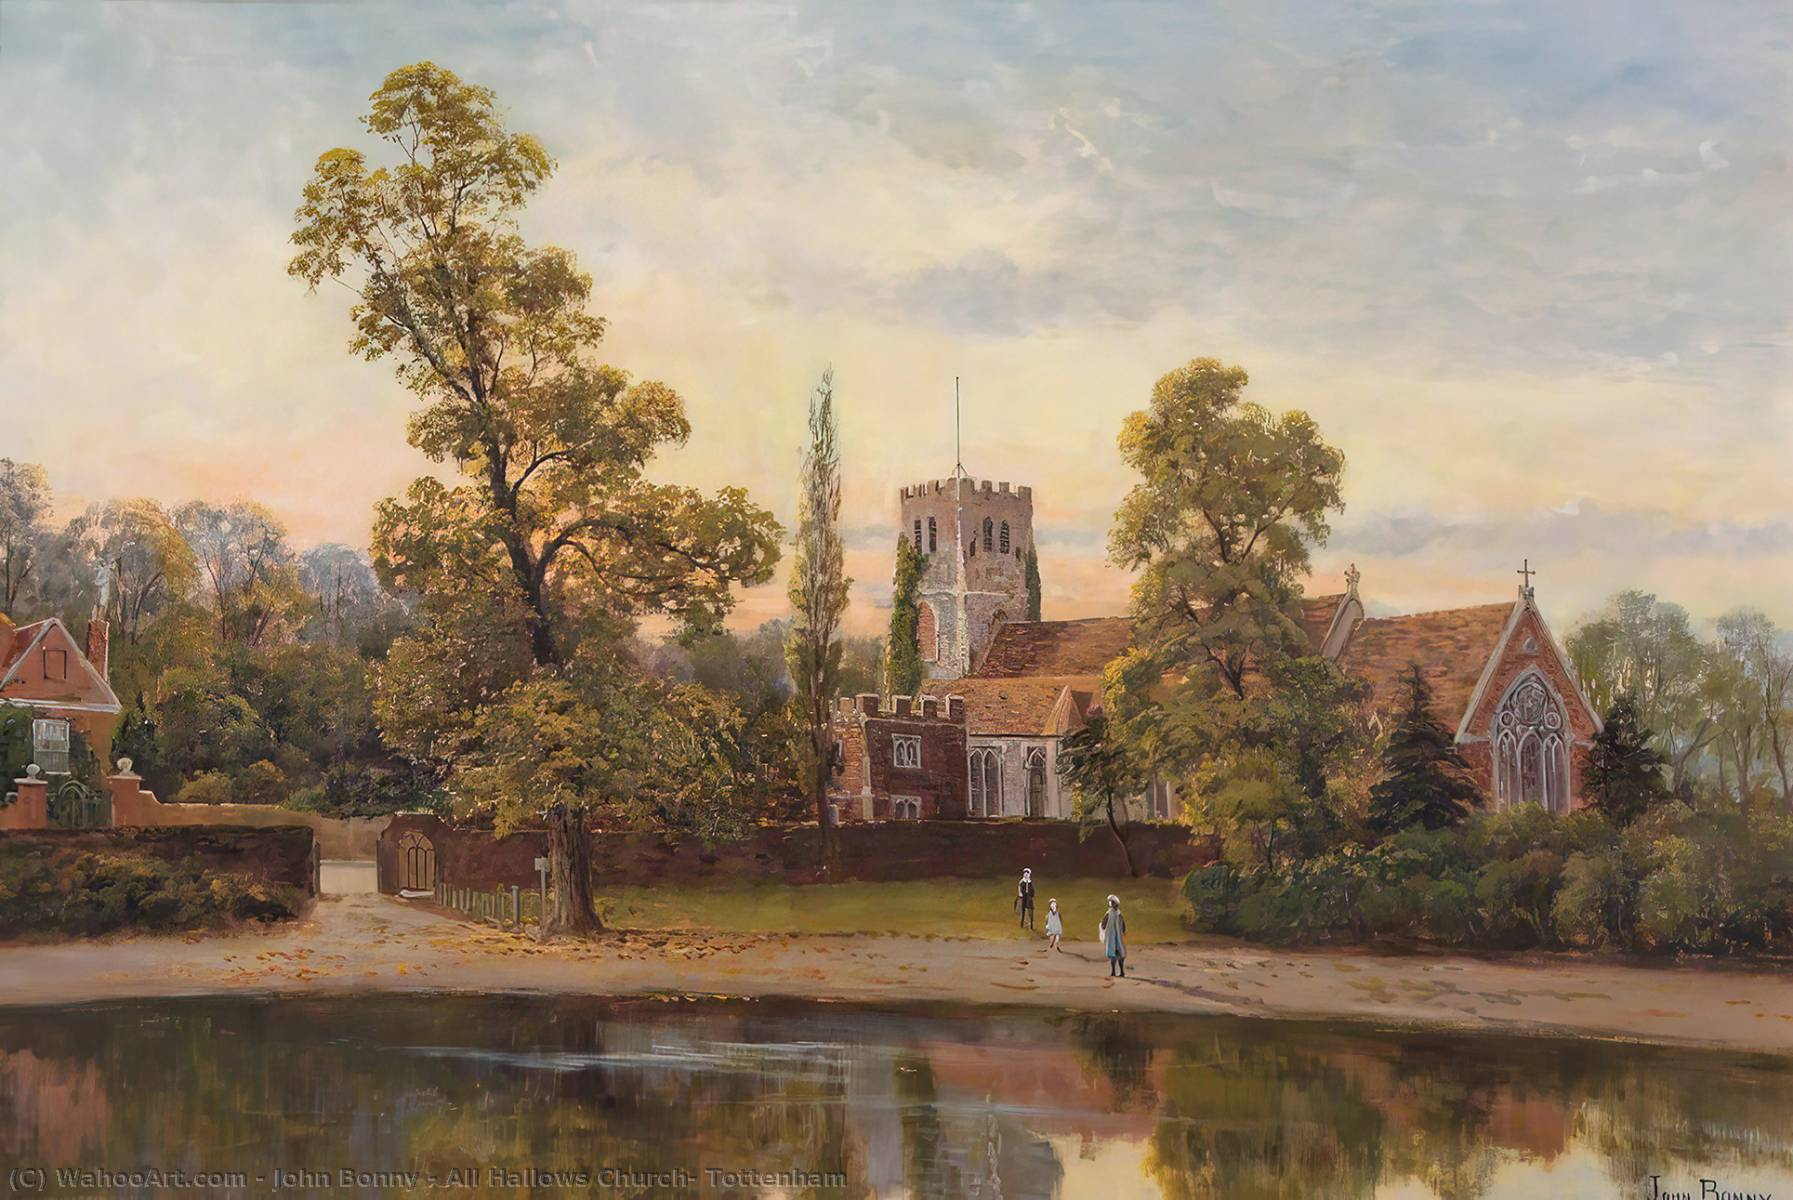 All Hallows Church, Tottenham, 1890 by John Bonny | WahooArt.com